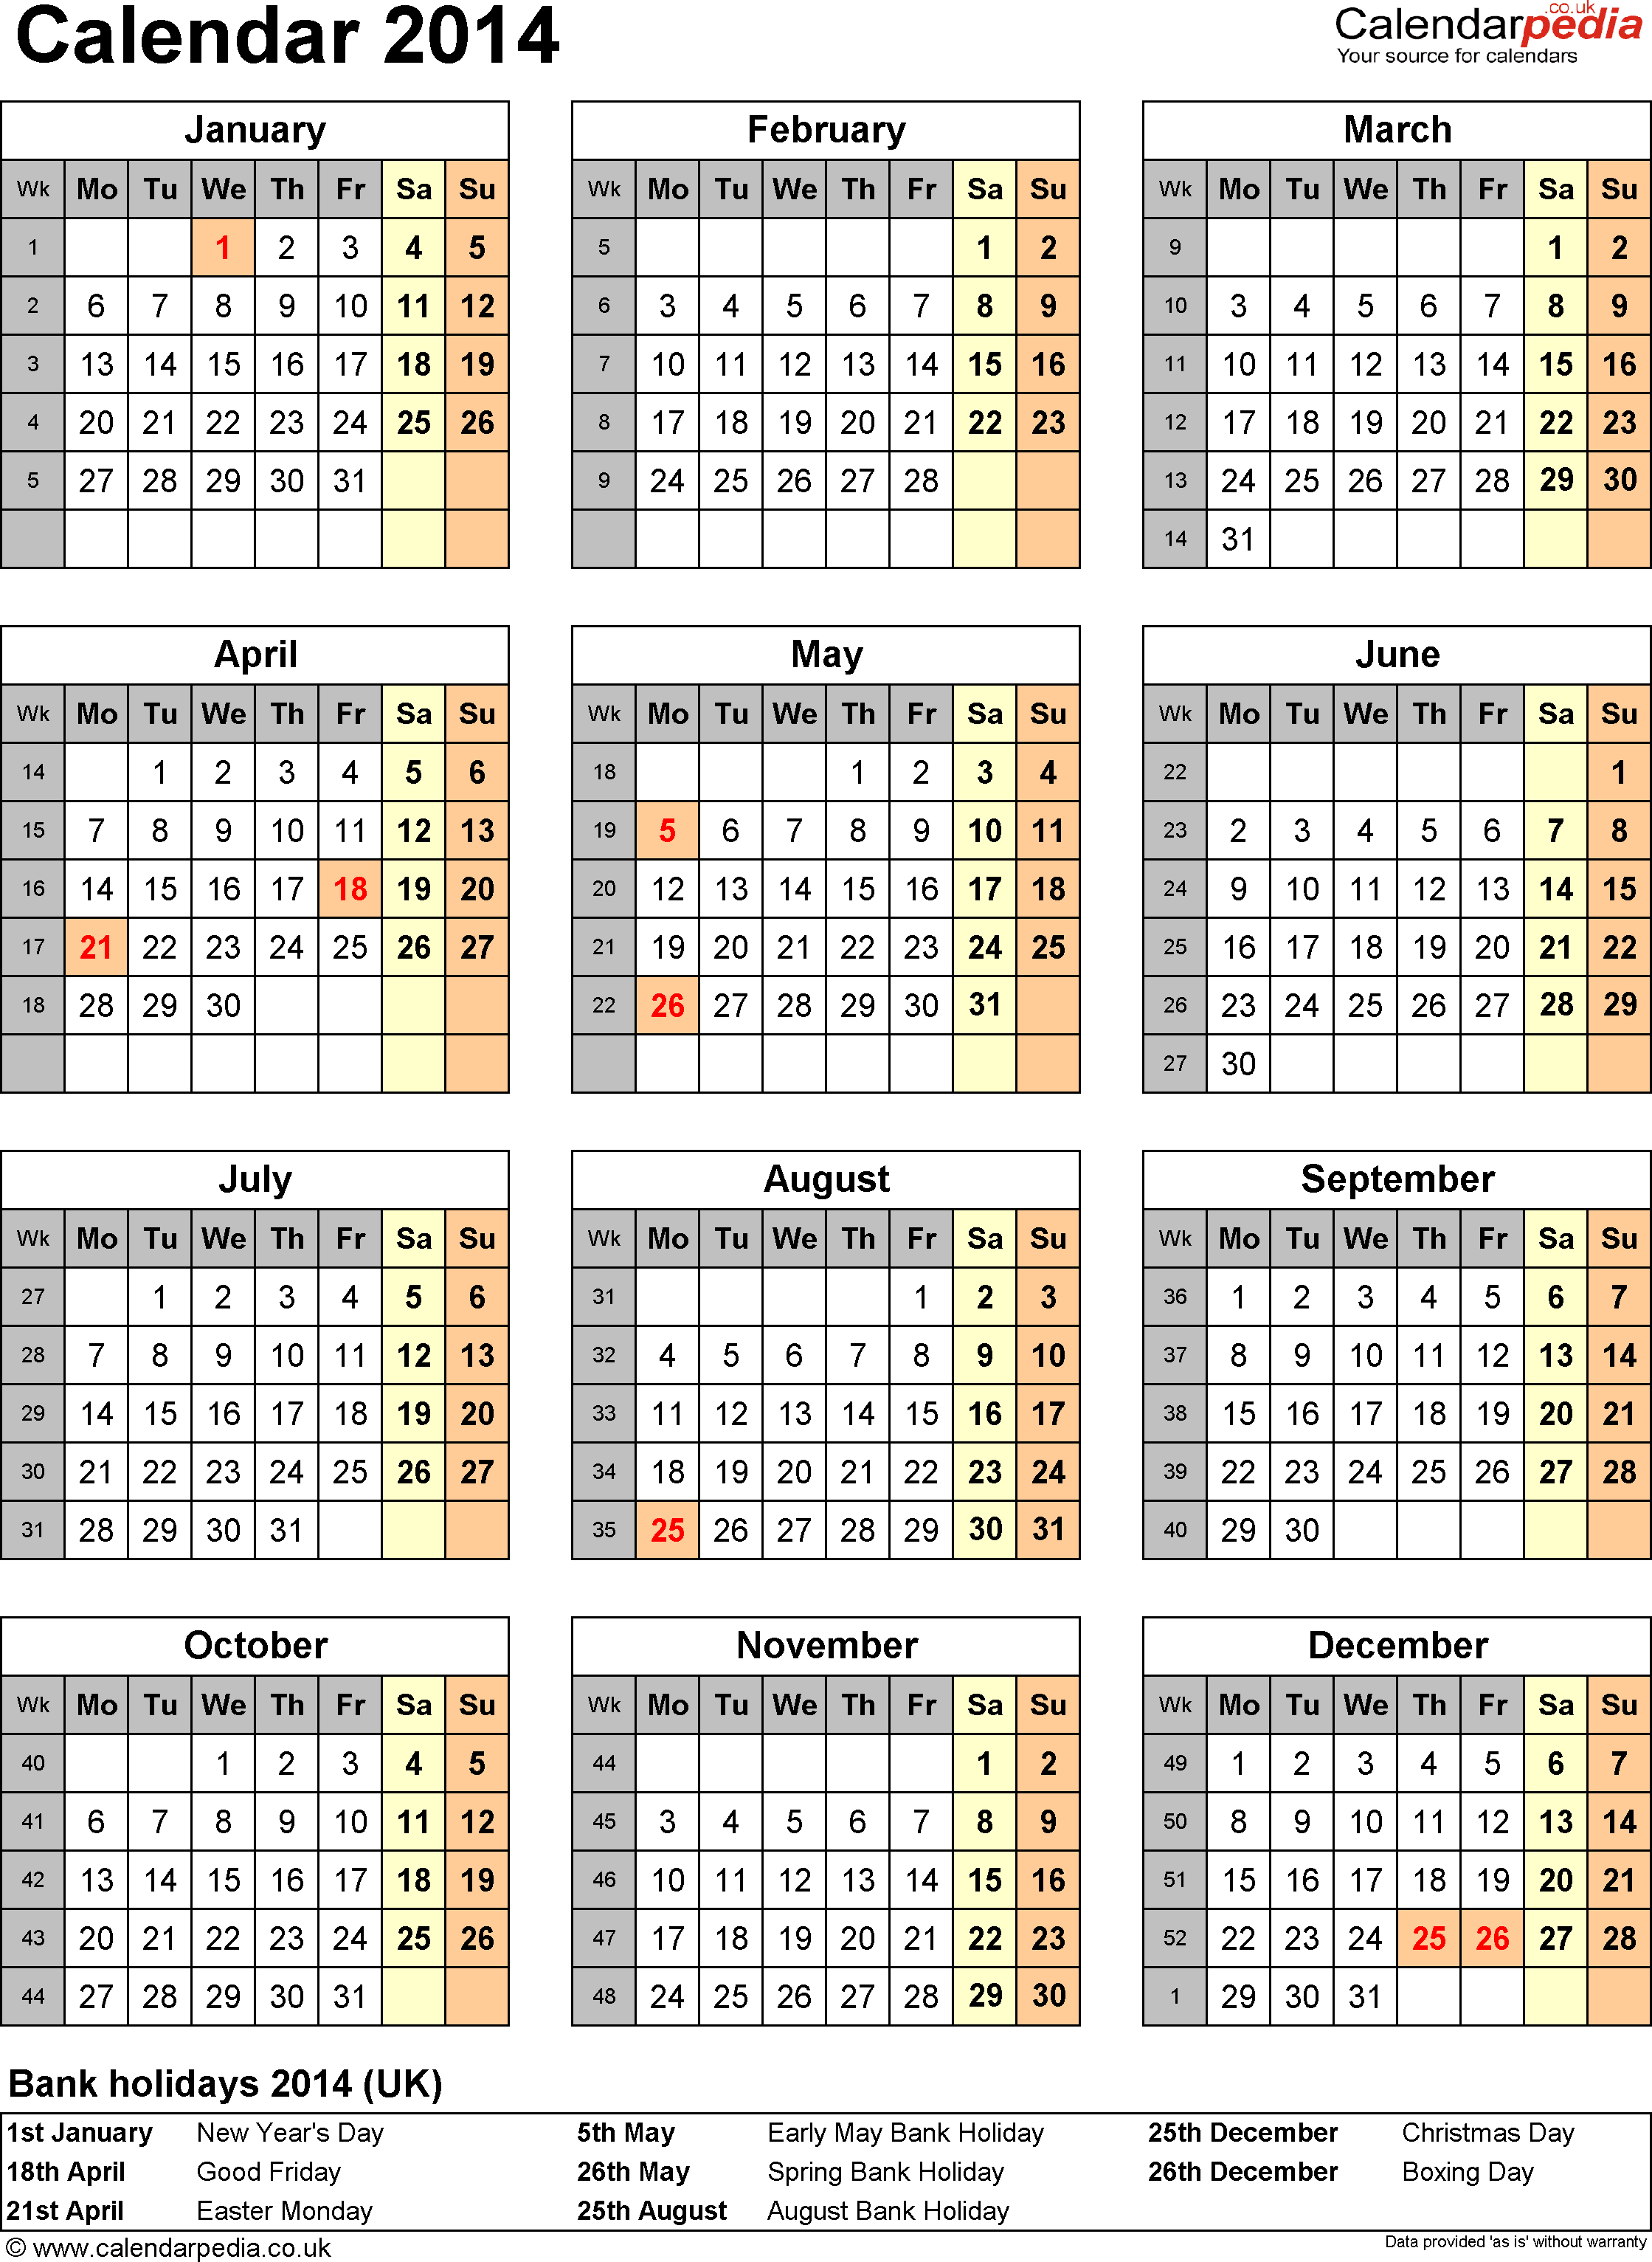 Download calendar 2014 as PNG file